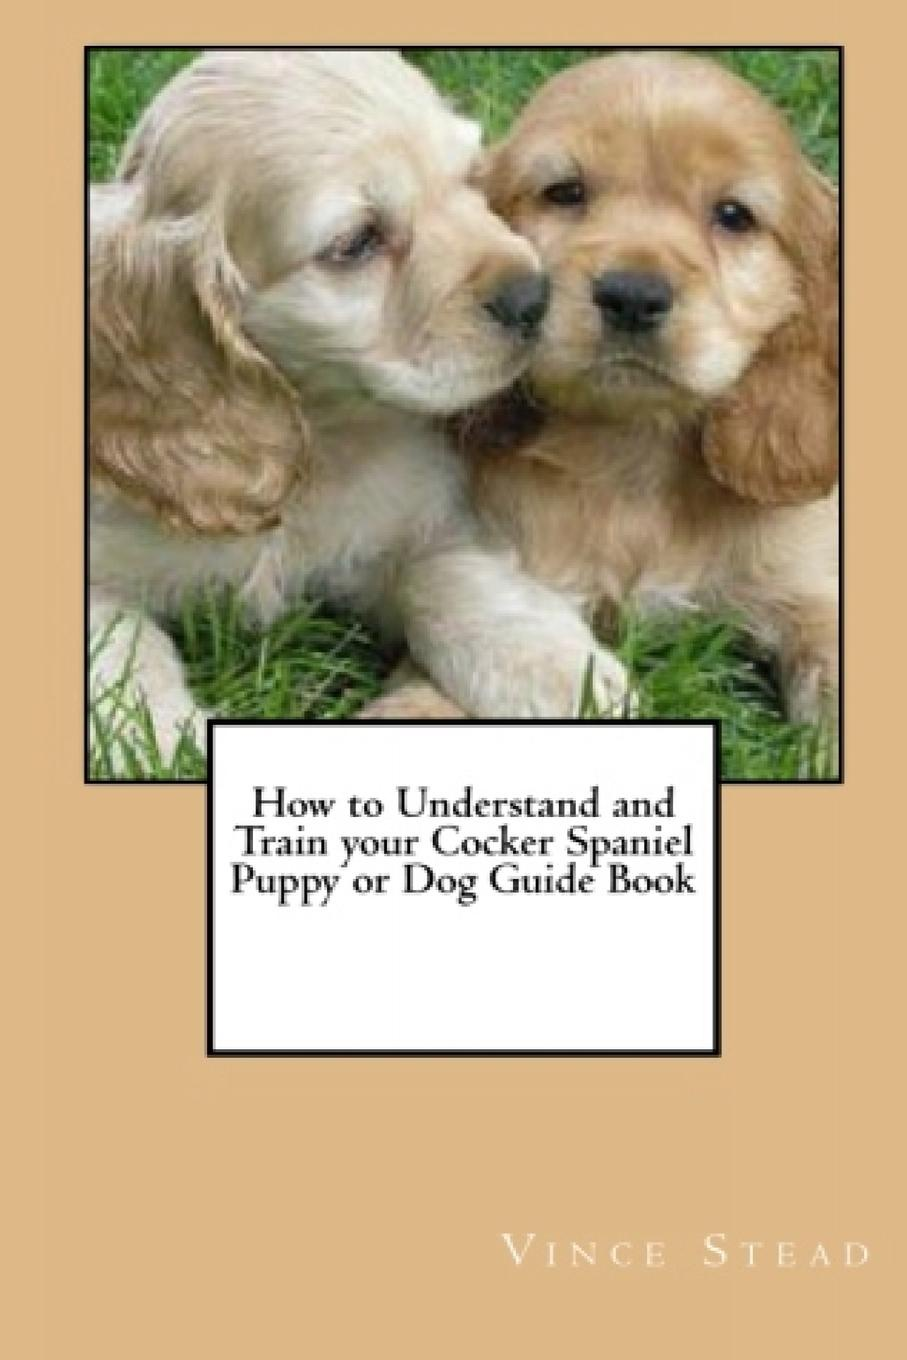 Vince Stead How to Understand and Train your Cocker Spaniel Puppy or Dog Guide Book vince stead how to understand and train your golden retriever puppy or dog